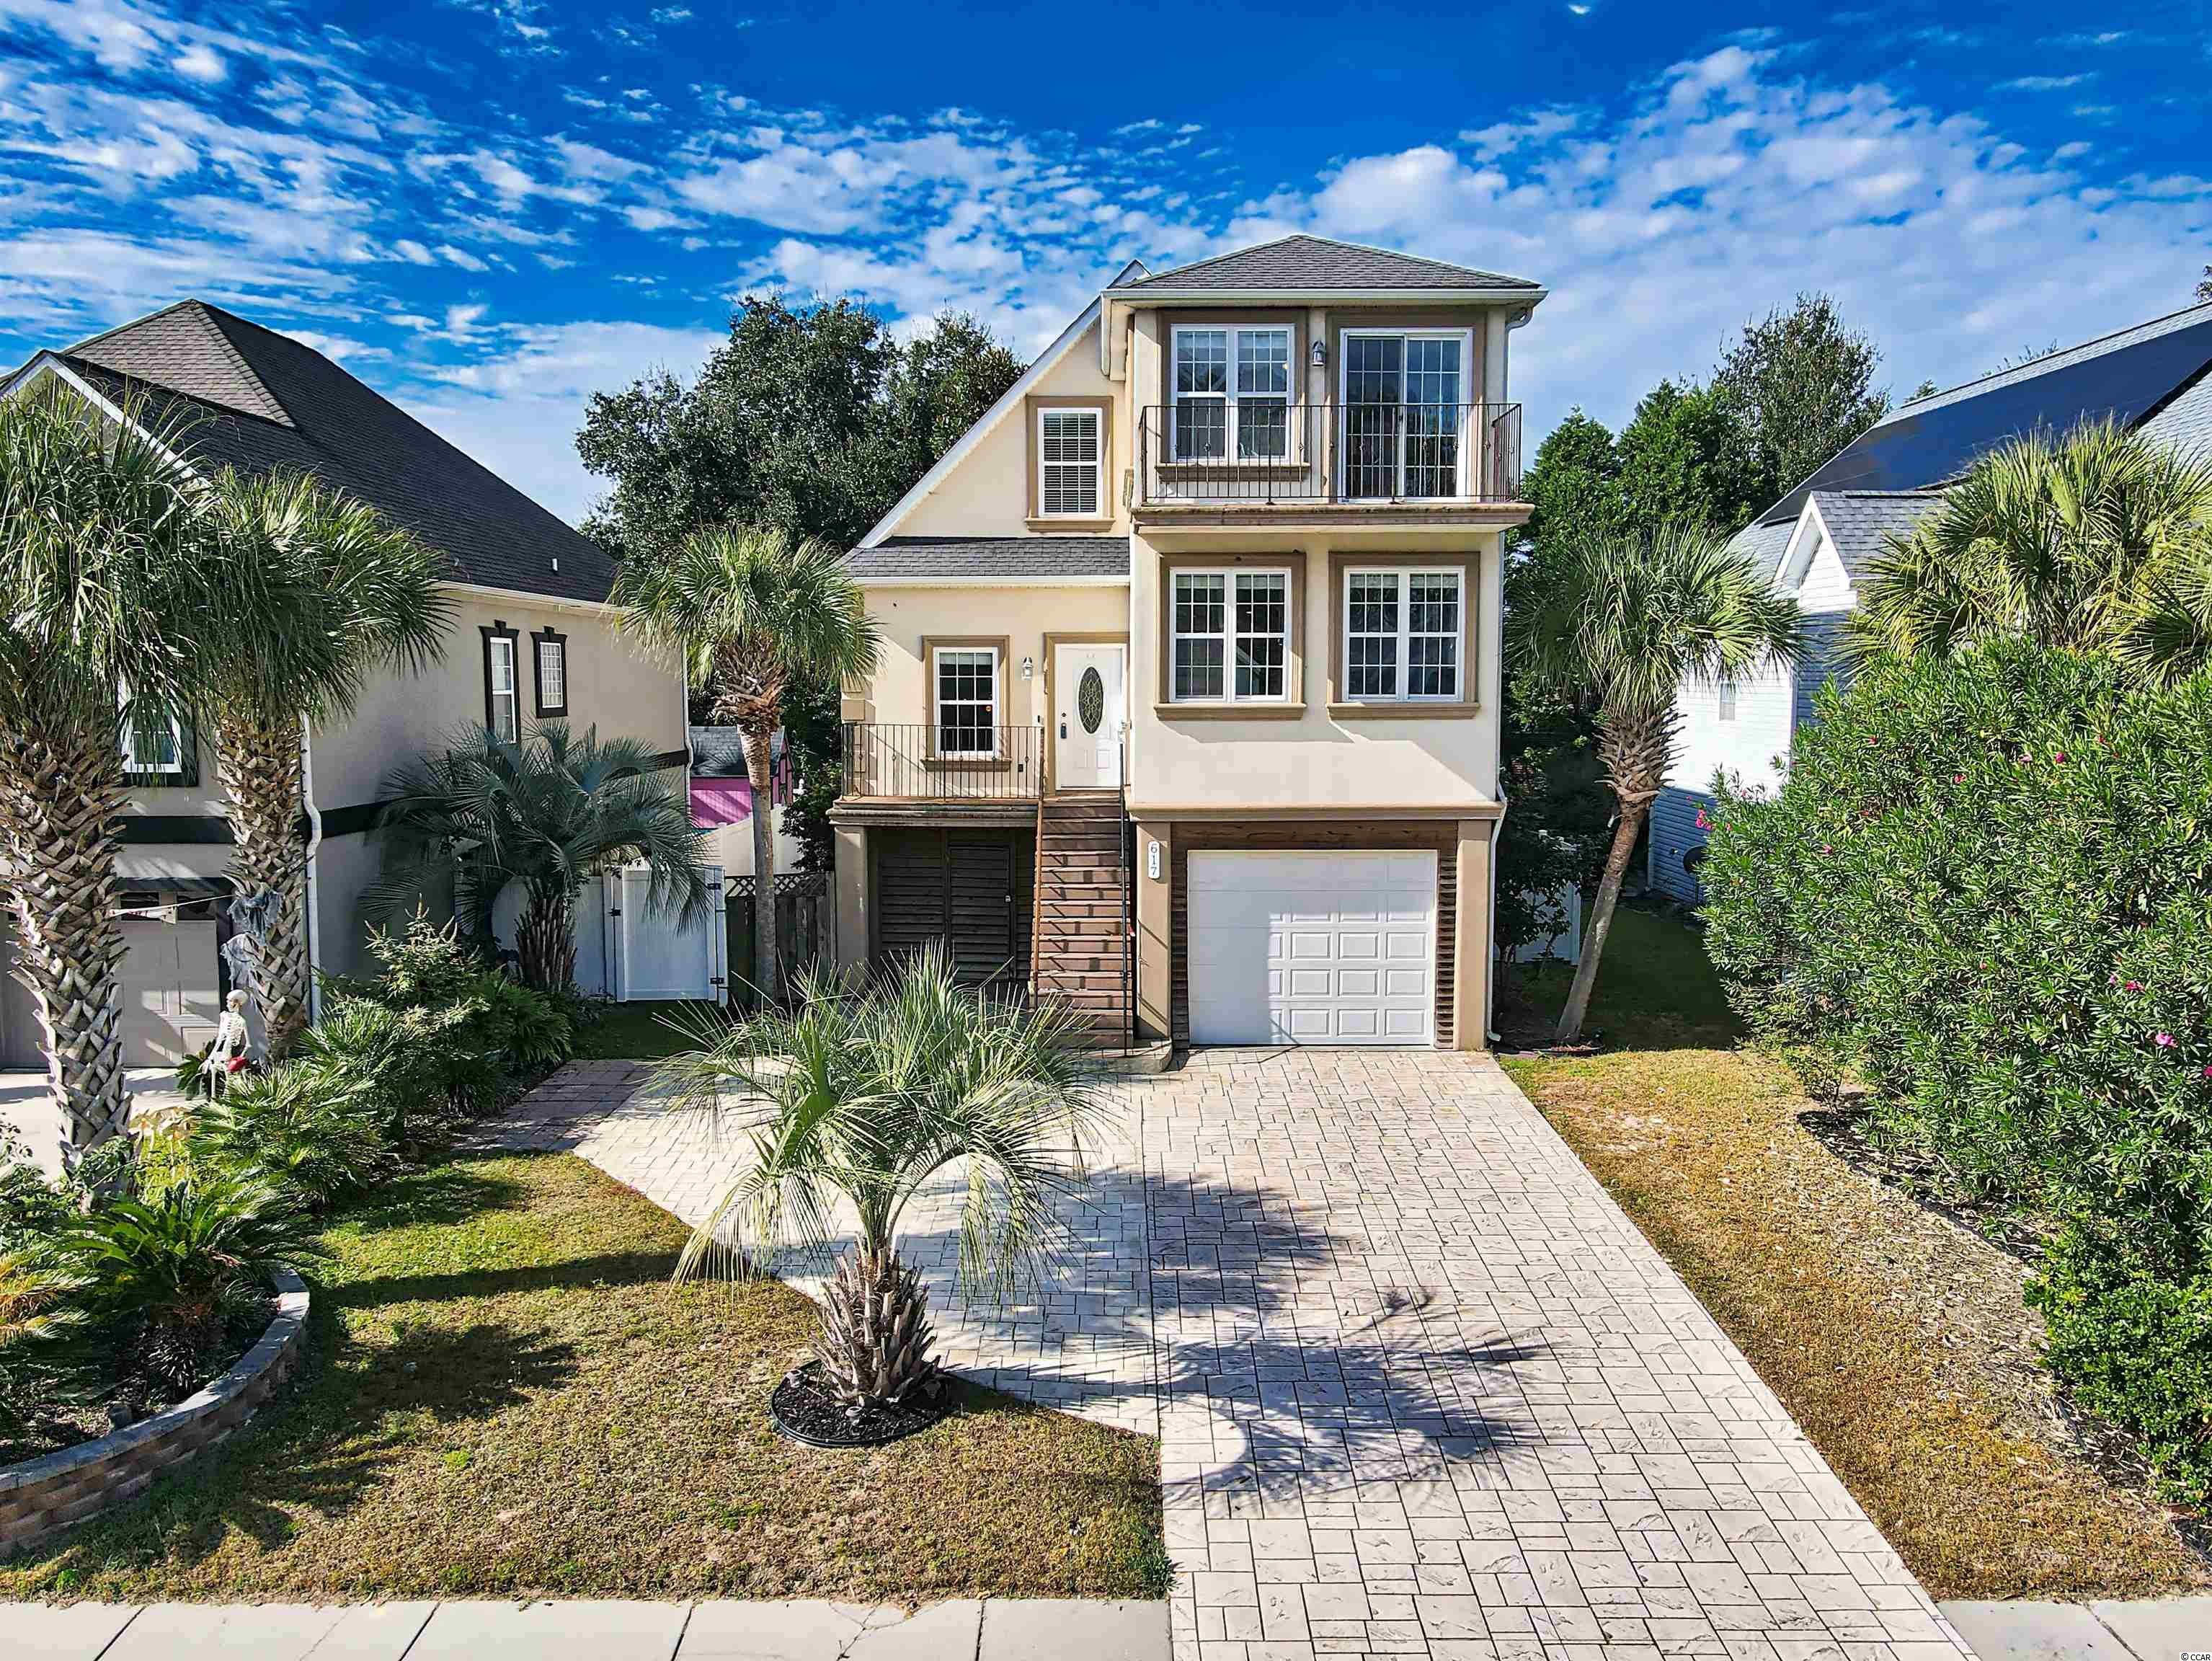 617 5th Ave. S North Myrtle Beach, SC 29582